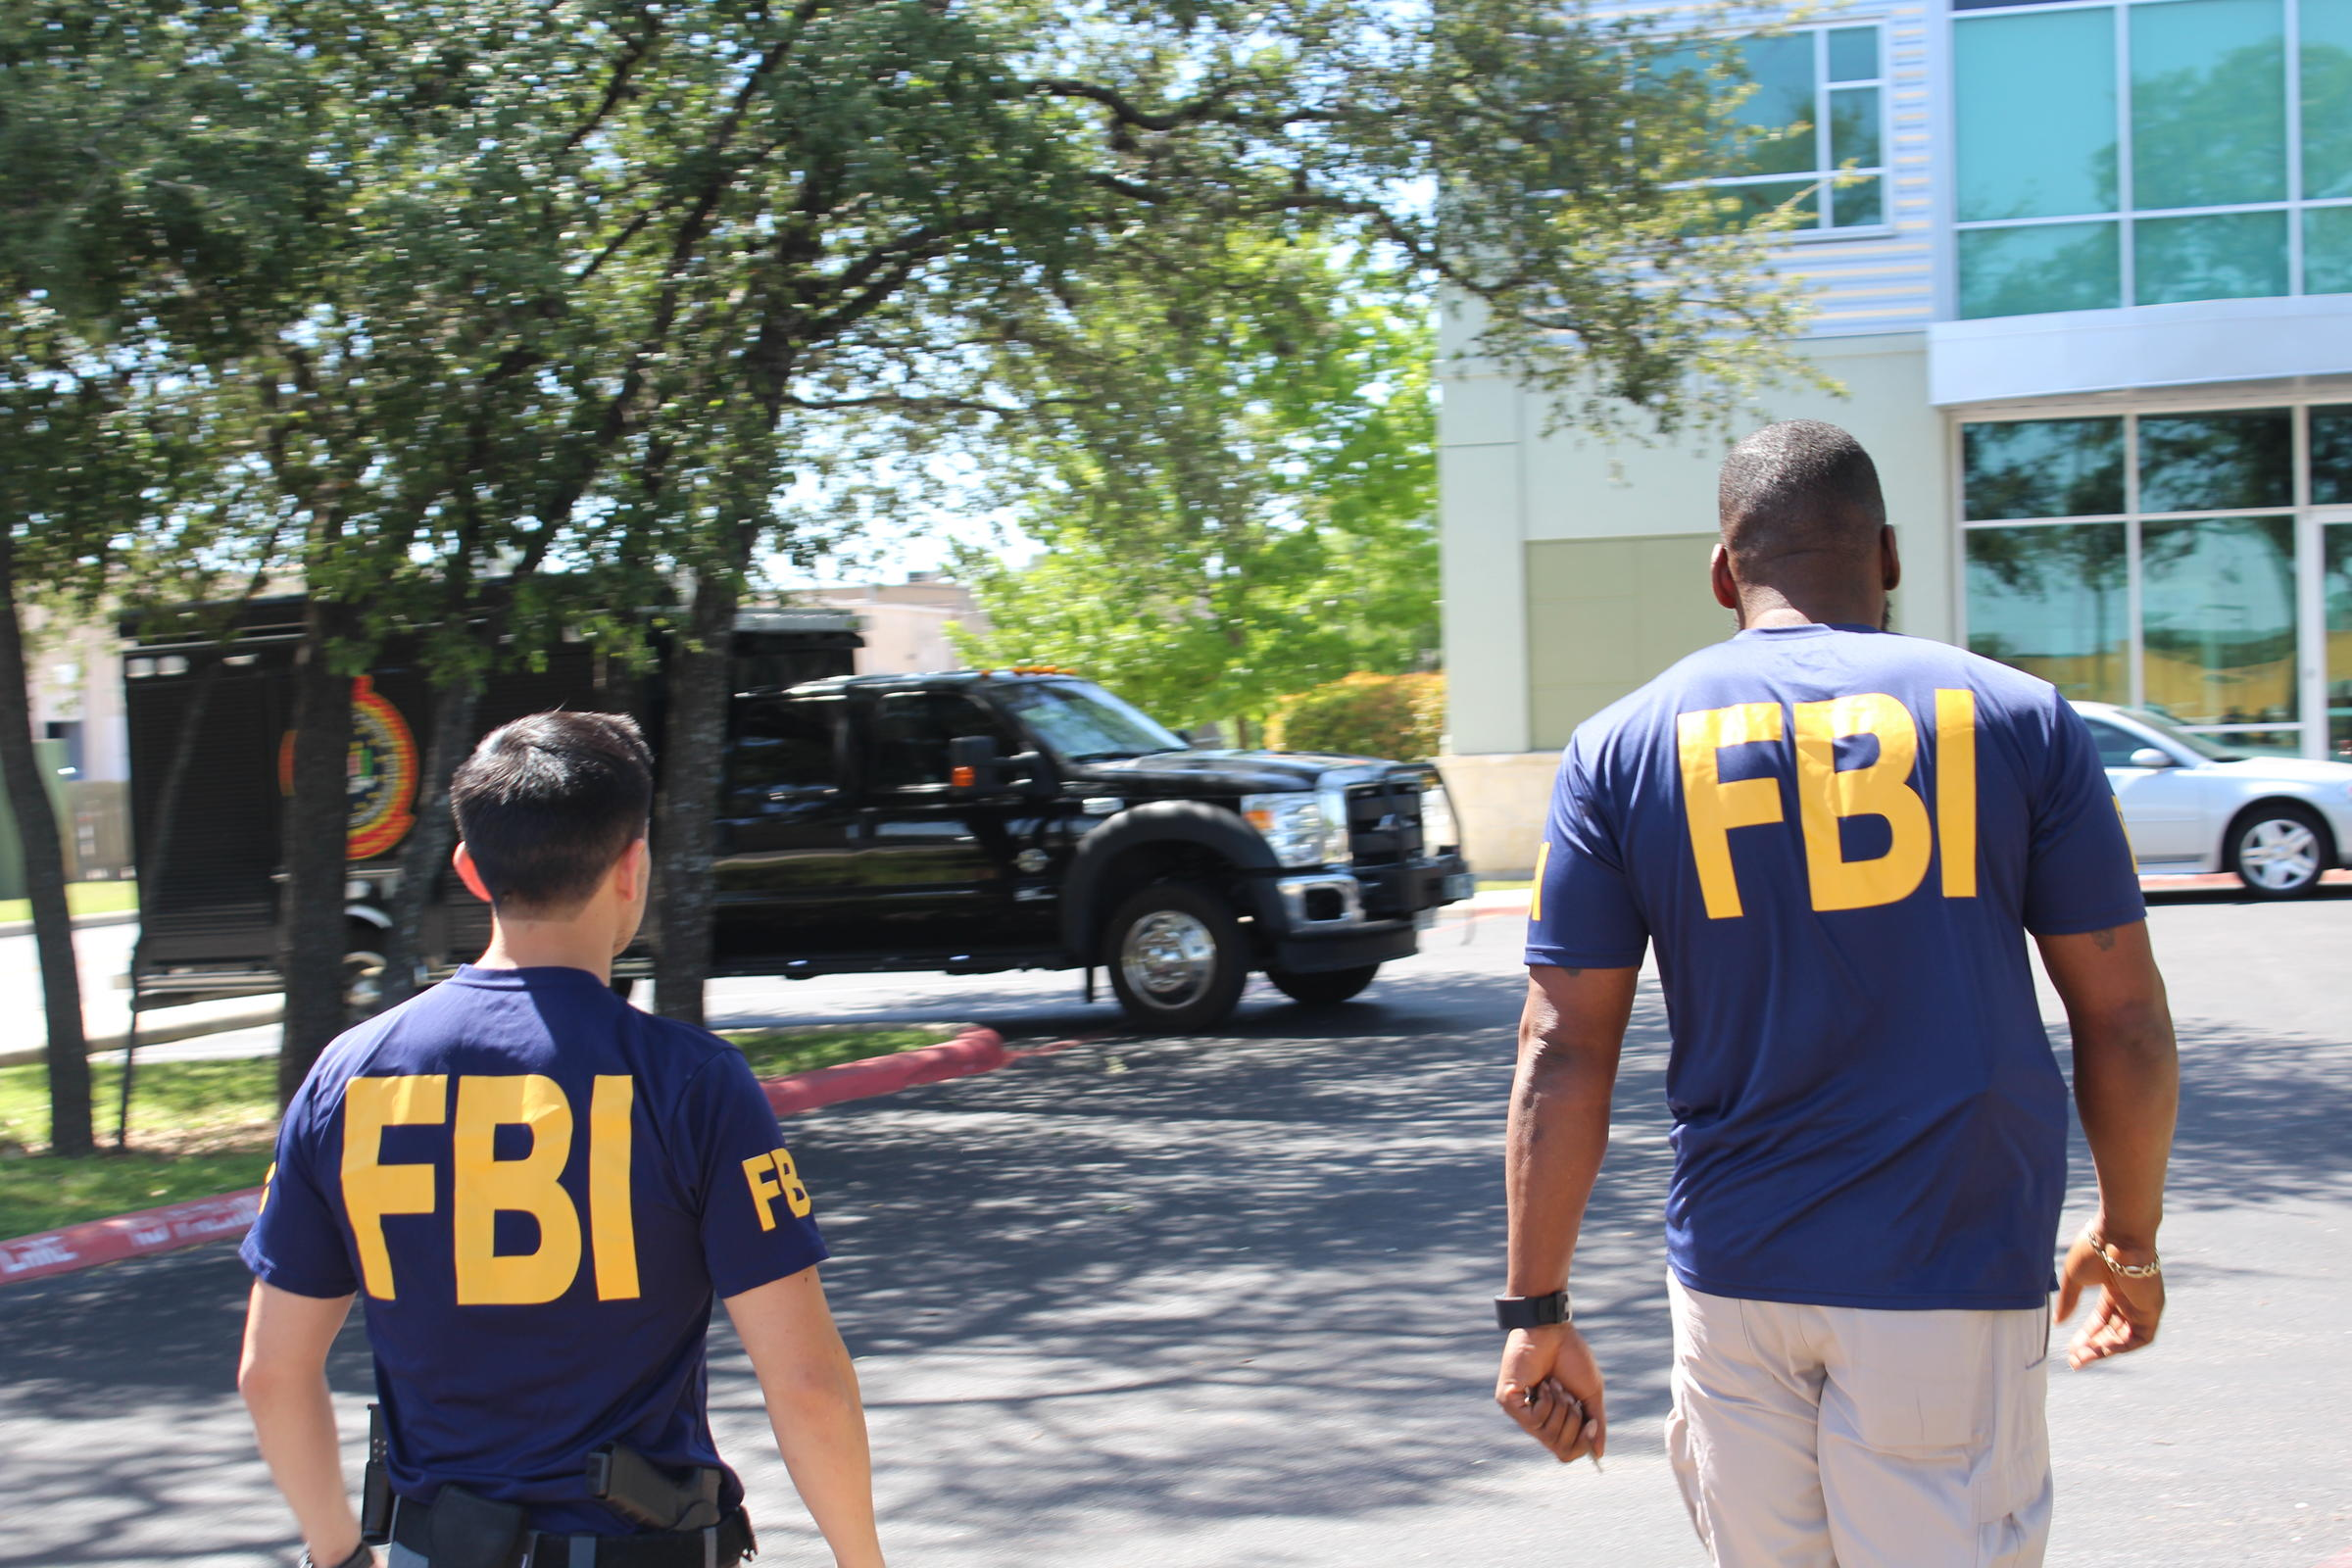 Federal Bureau of Investigation  raiding Laredo City Hall, county courthouse